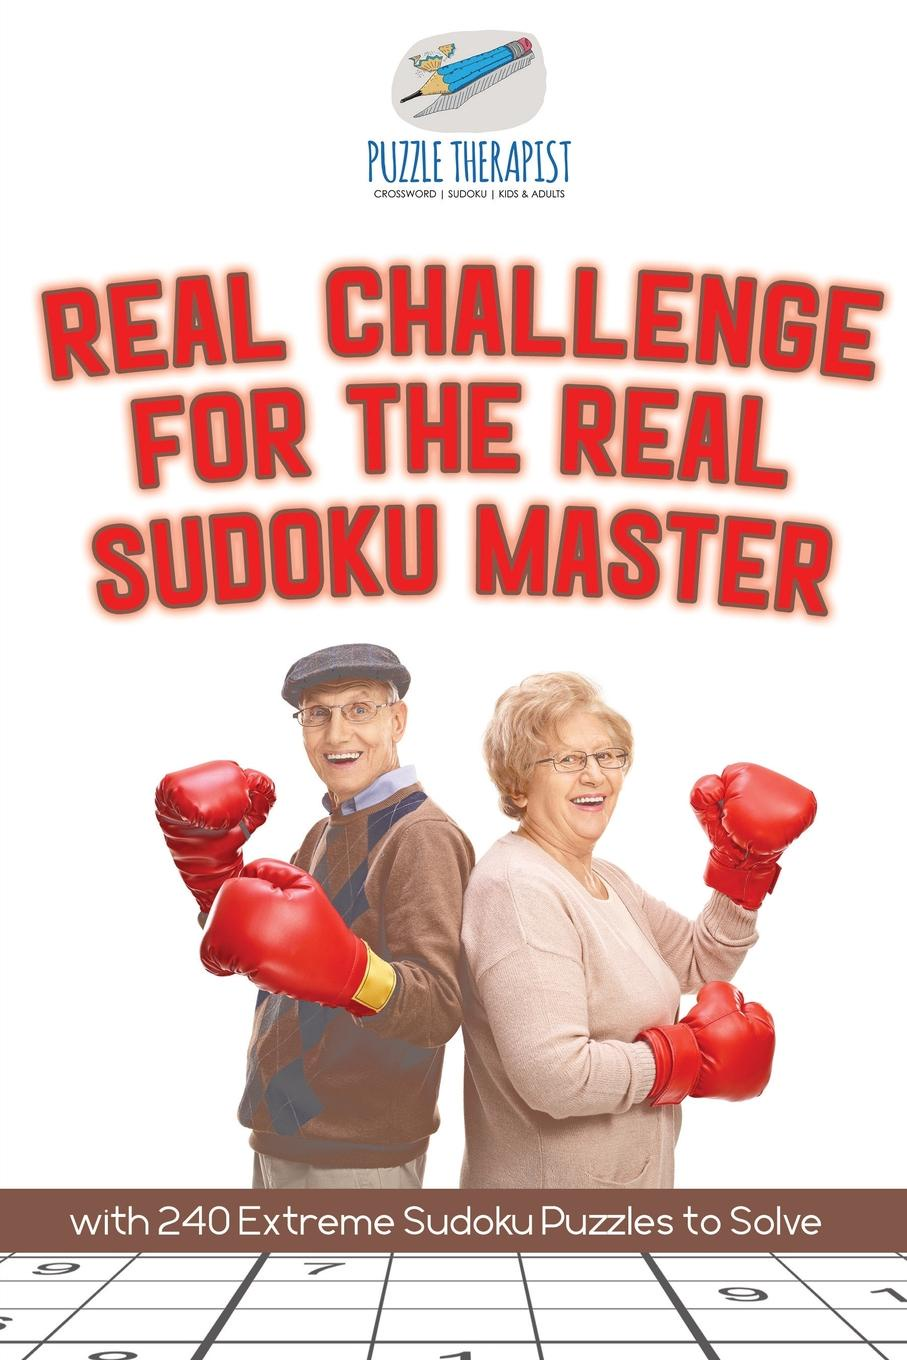 Puzzle Therapist Real Challenge for the Real Sudoku Master . with 240 Extreme Sudoku Puzzles to Solve puzzle therapist one a day sudoku for the utterly obsessed large print puzzles for adults